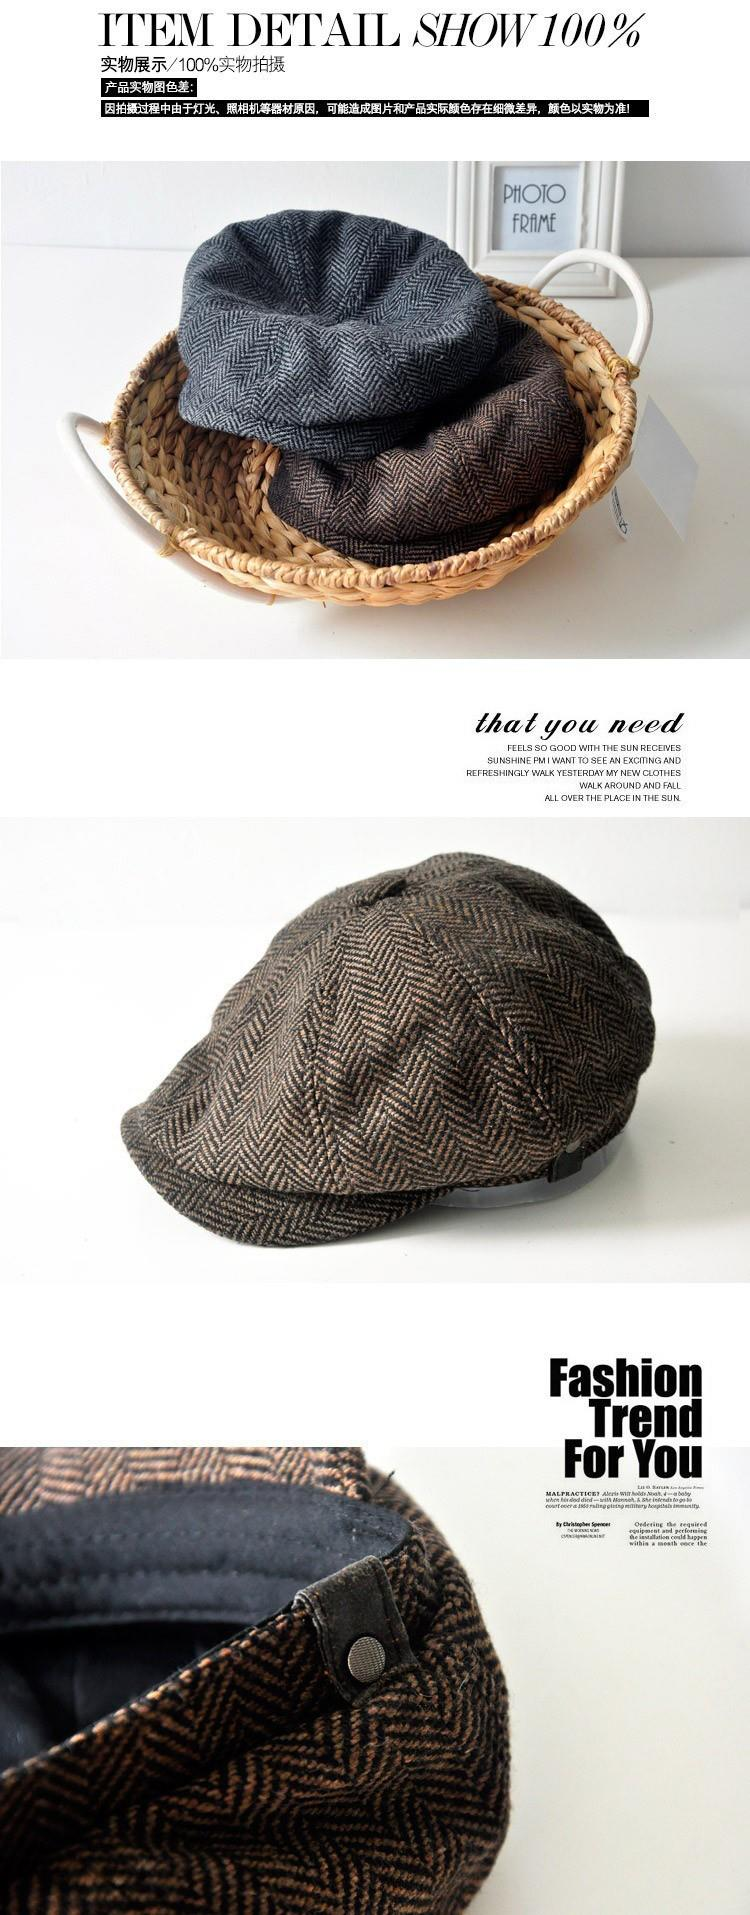 2c5efe40ab2 Men s cap New Newsboy Caps Movie star Retro HERRINGBONE TWEED cap Driving  Men Wool Fleece Hat